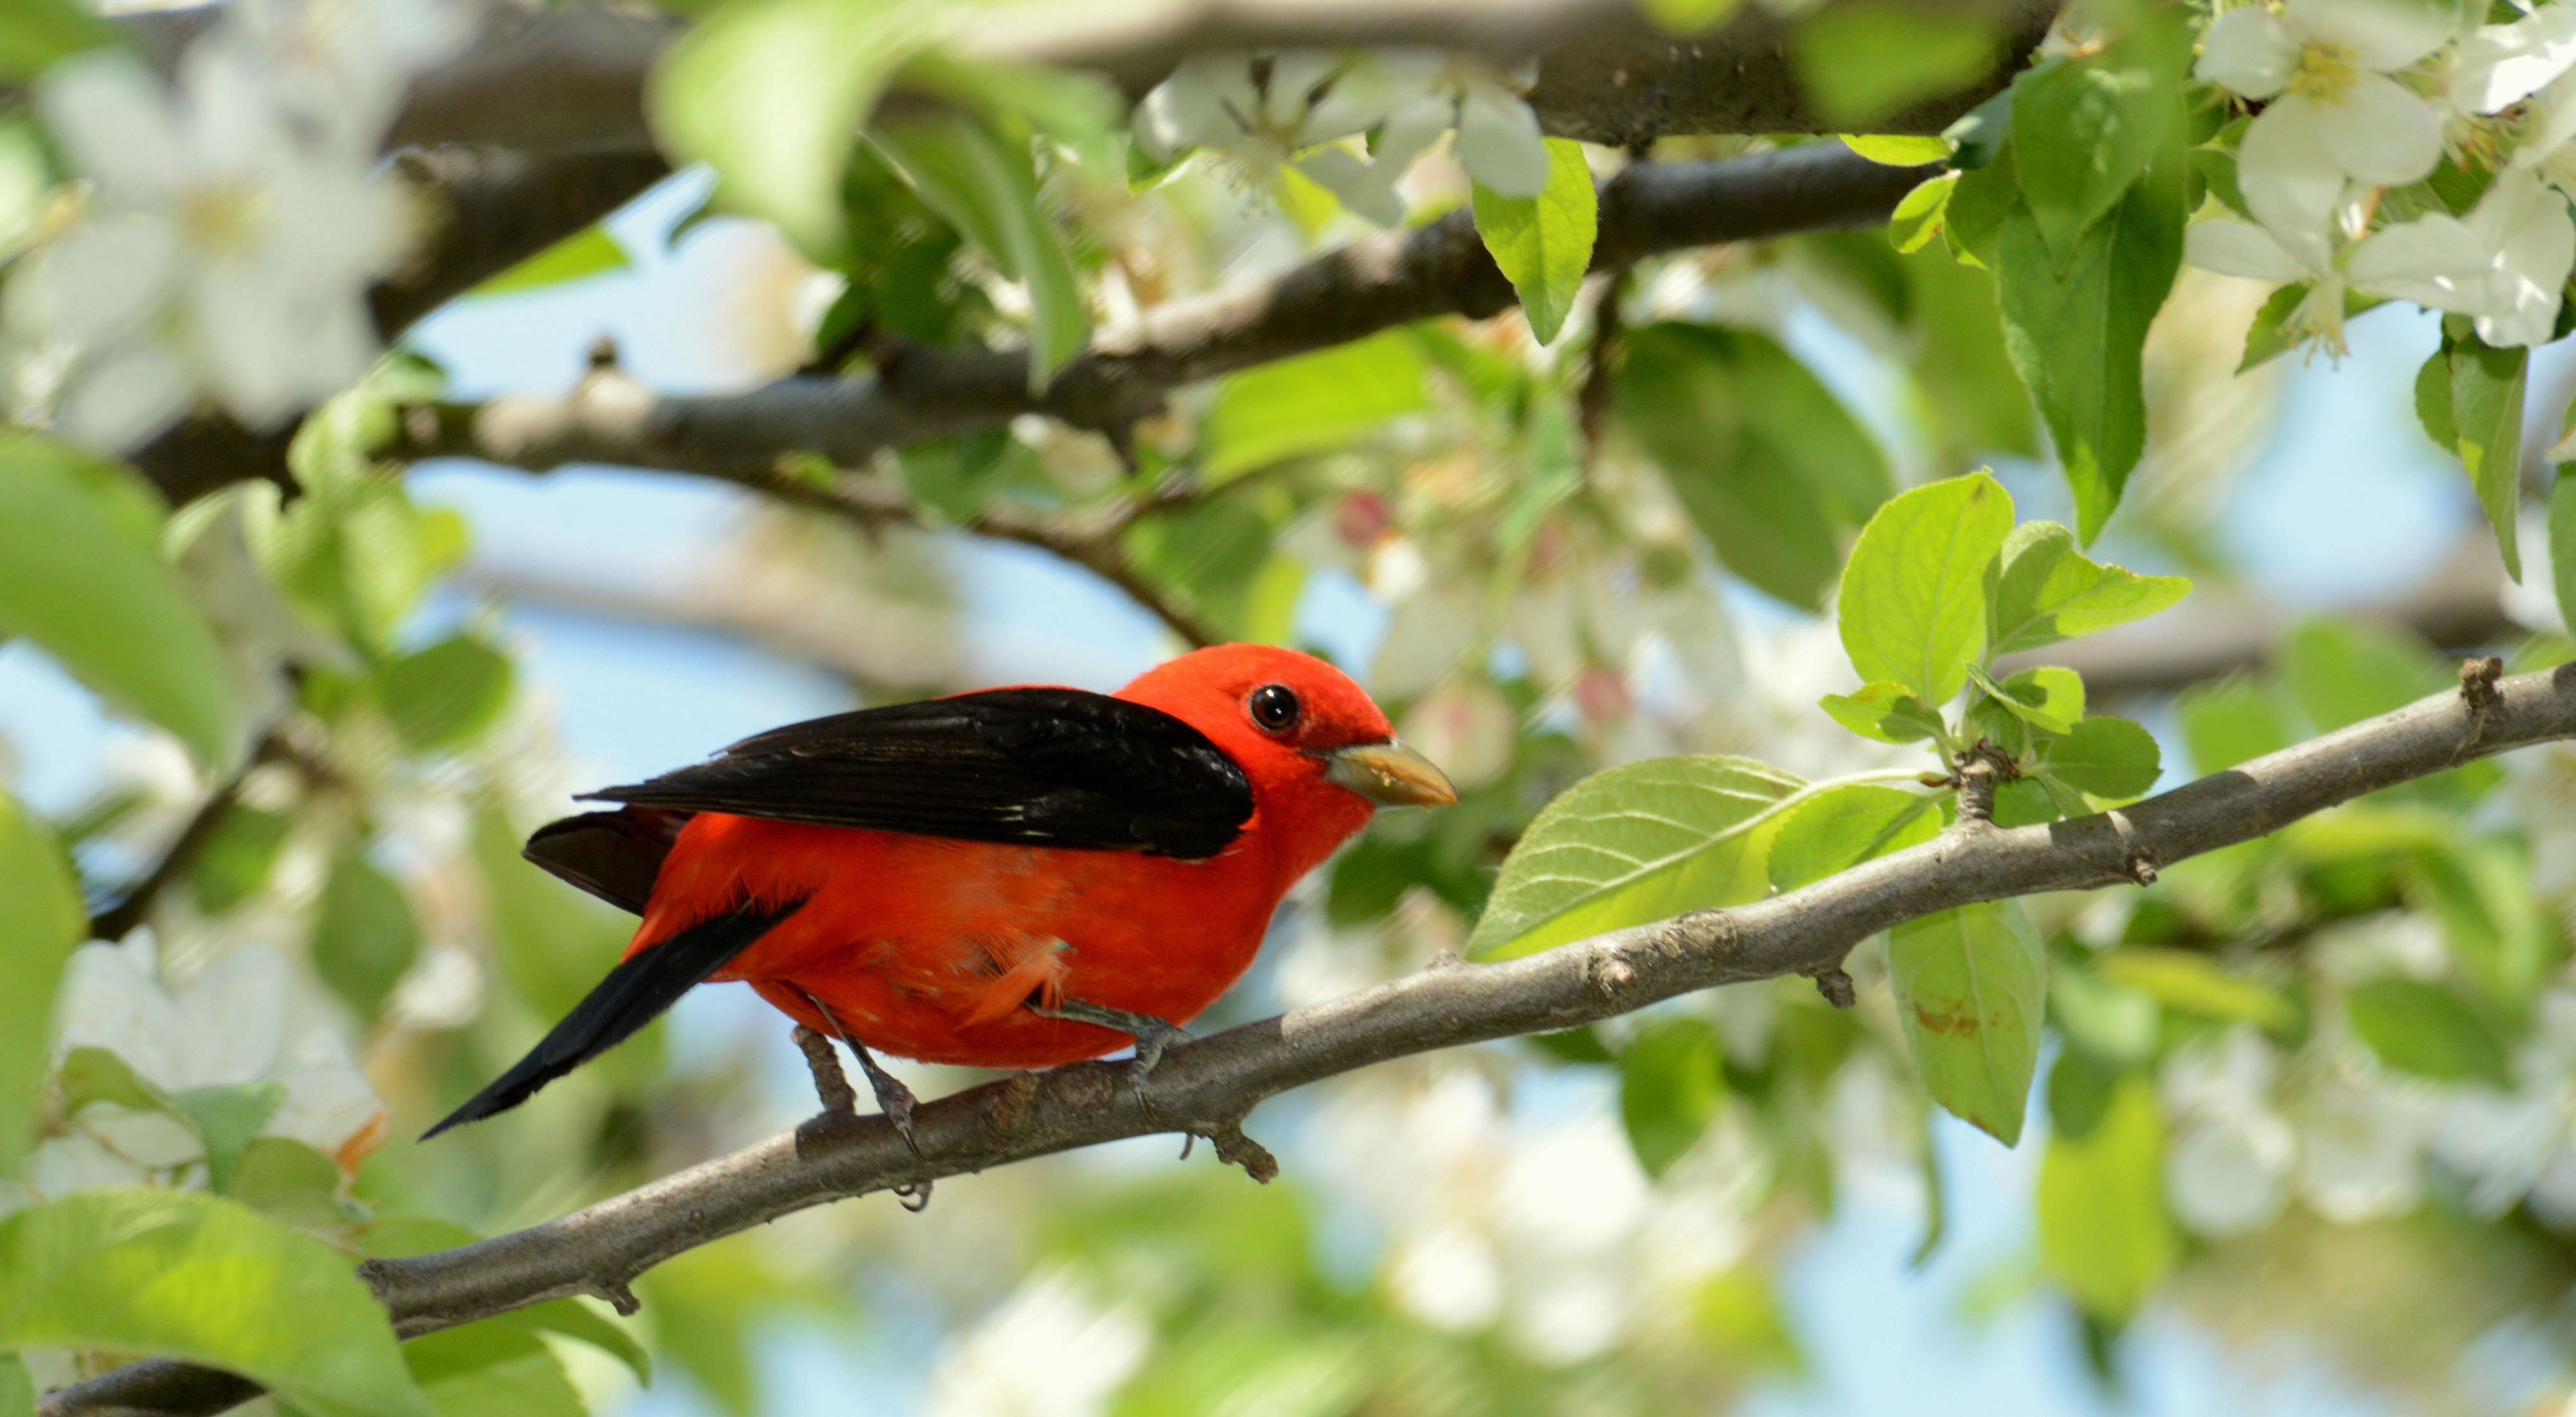 A bright red bird with black wings perching on a tree with white flowers.